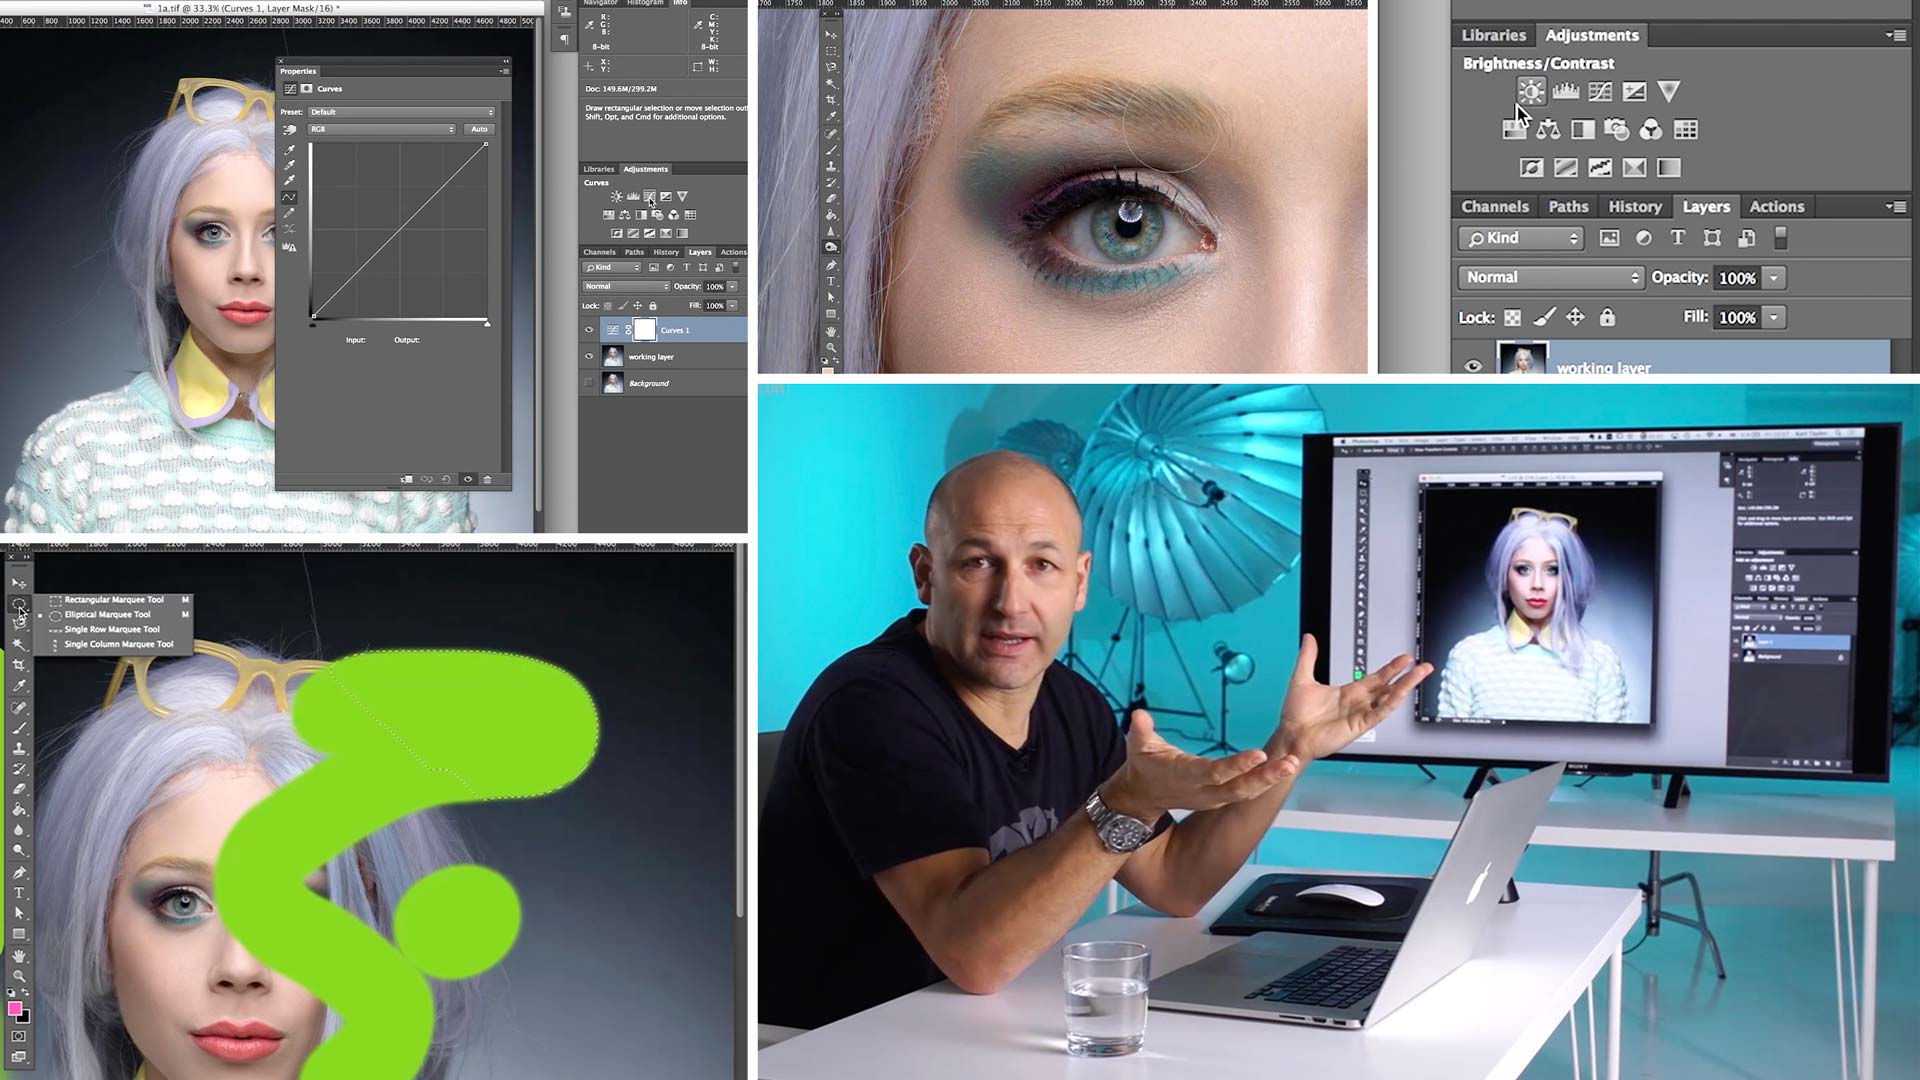 Photoshop interface and tools